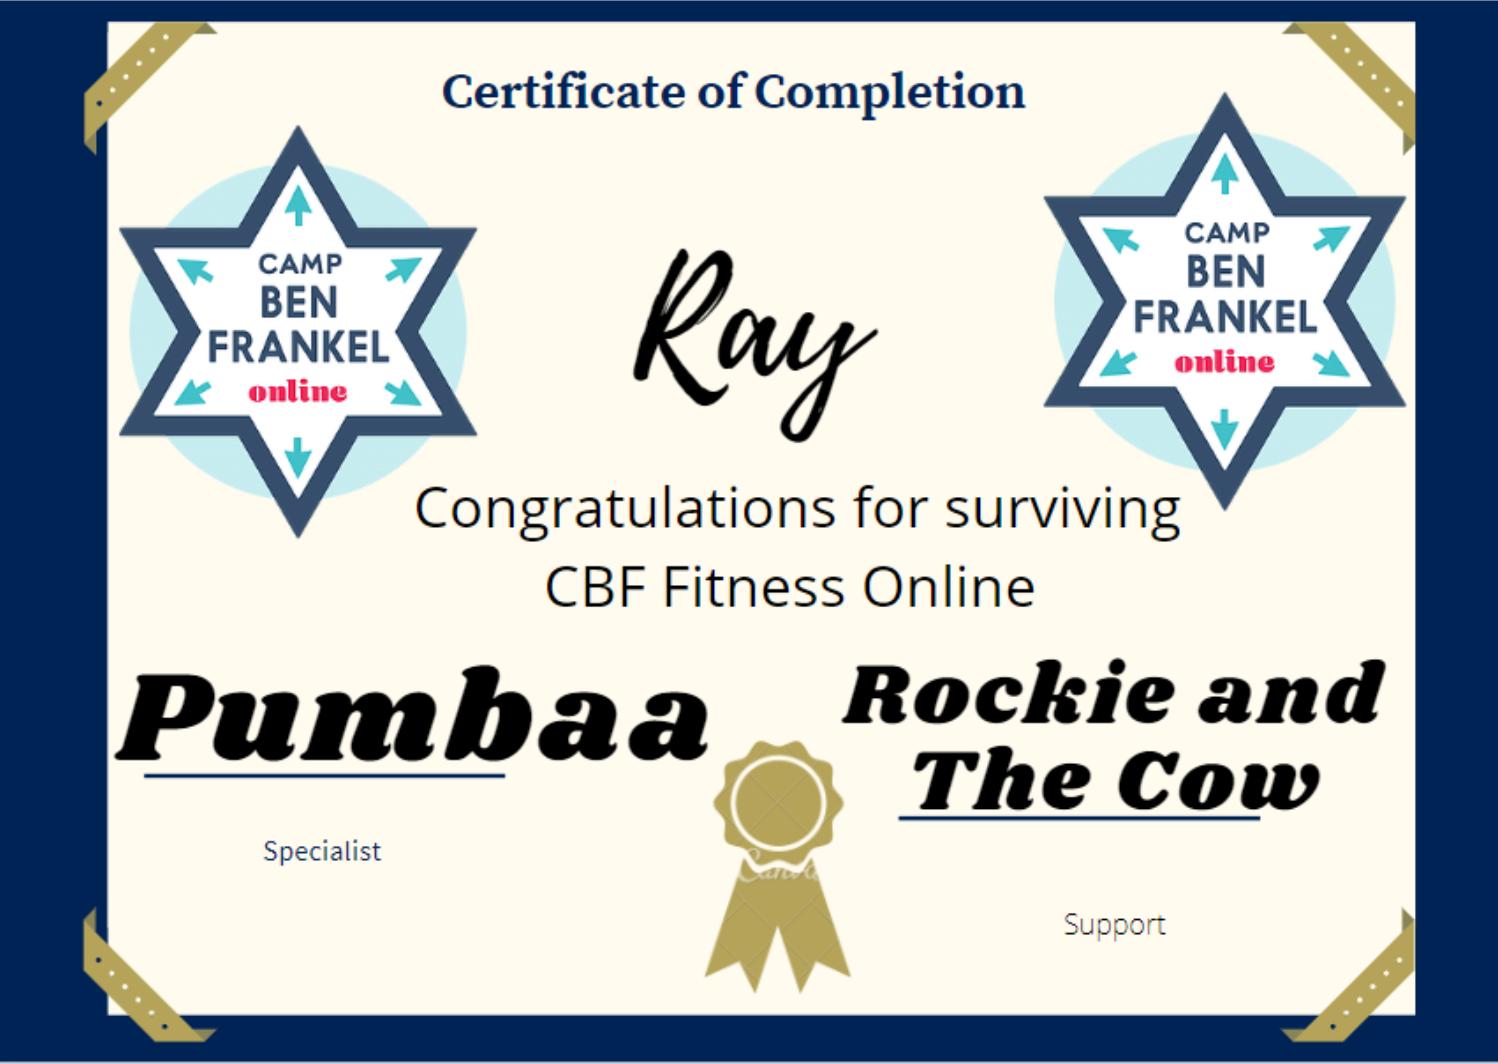 Ray - Certificate of Completion